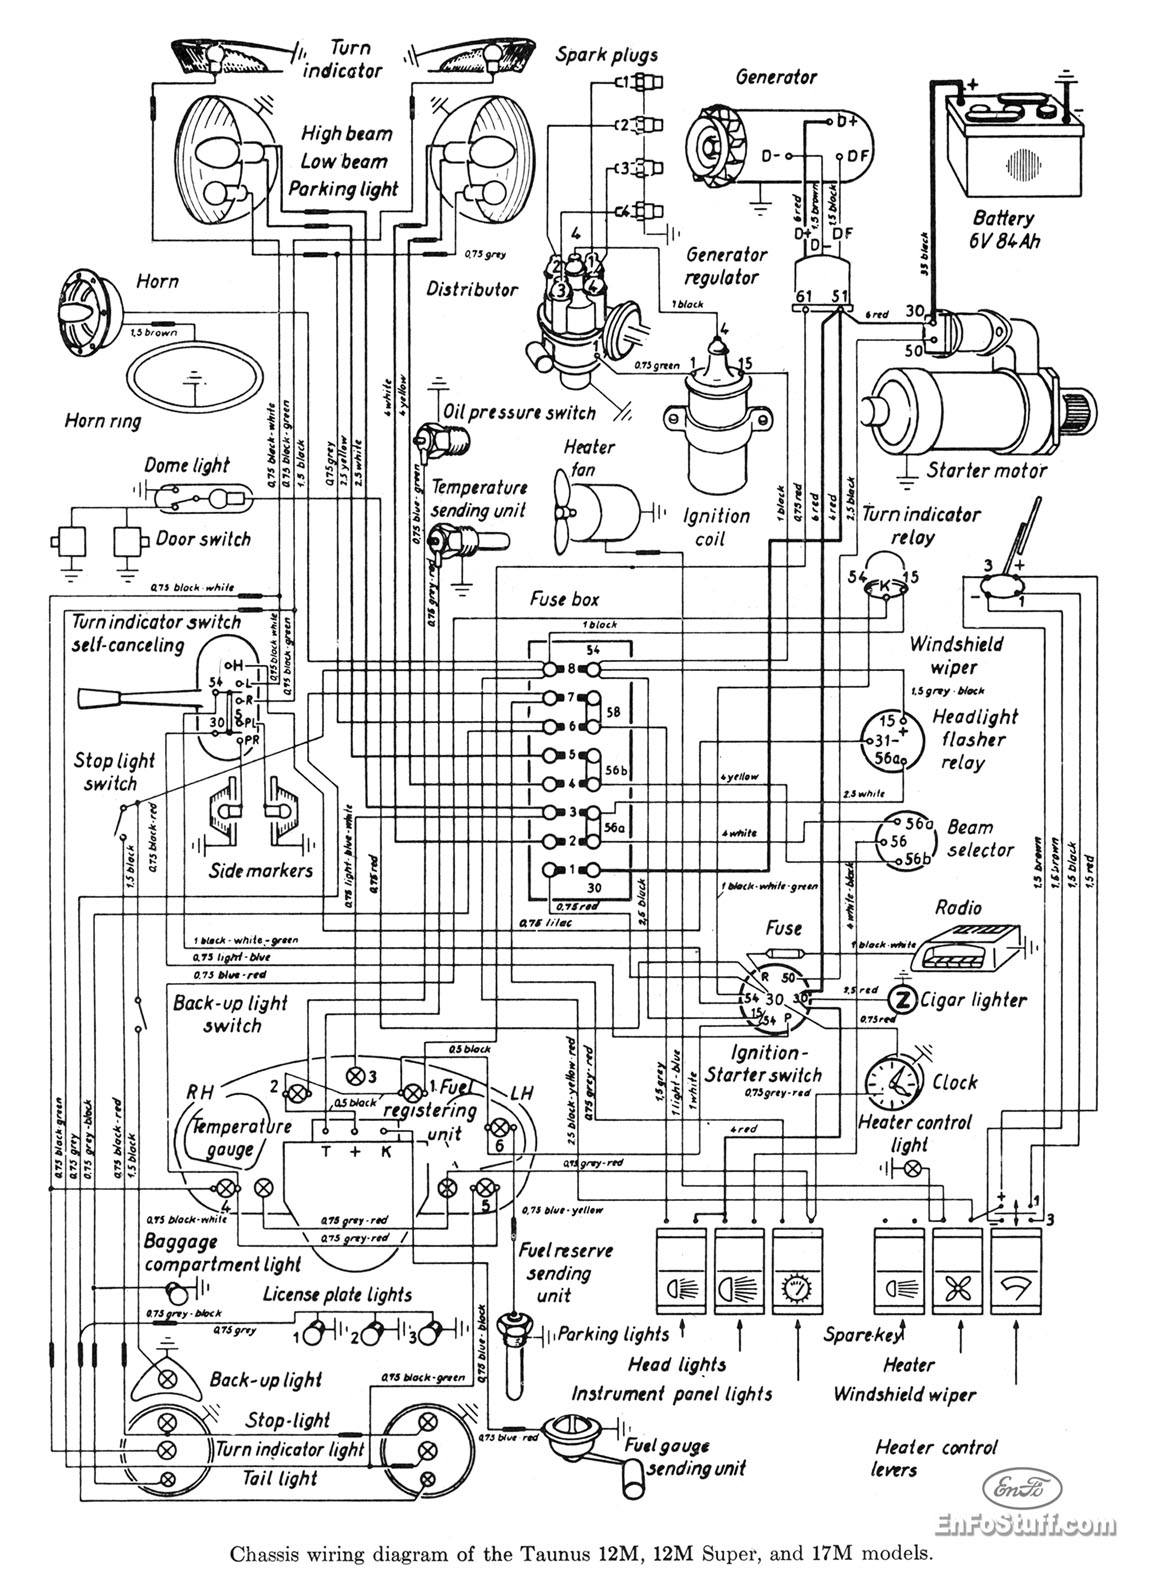 1966 Mercedes Wiring Diagram Ford Mustang Coupe For Taunus 12m Super And 17m Models Rh Enfostuff Com Chevy Truck Schematic